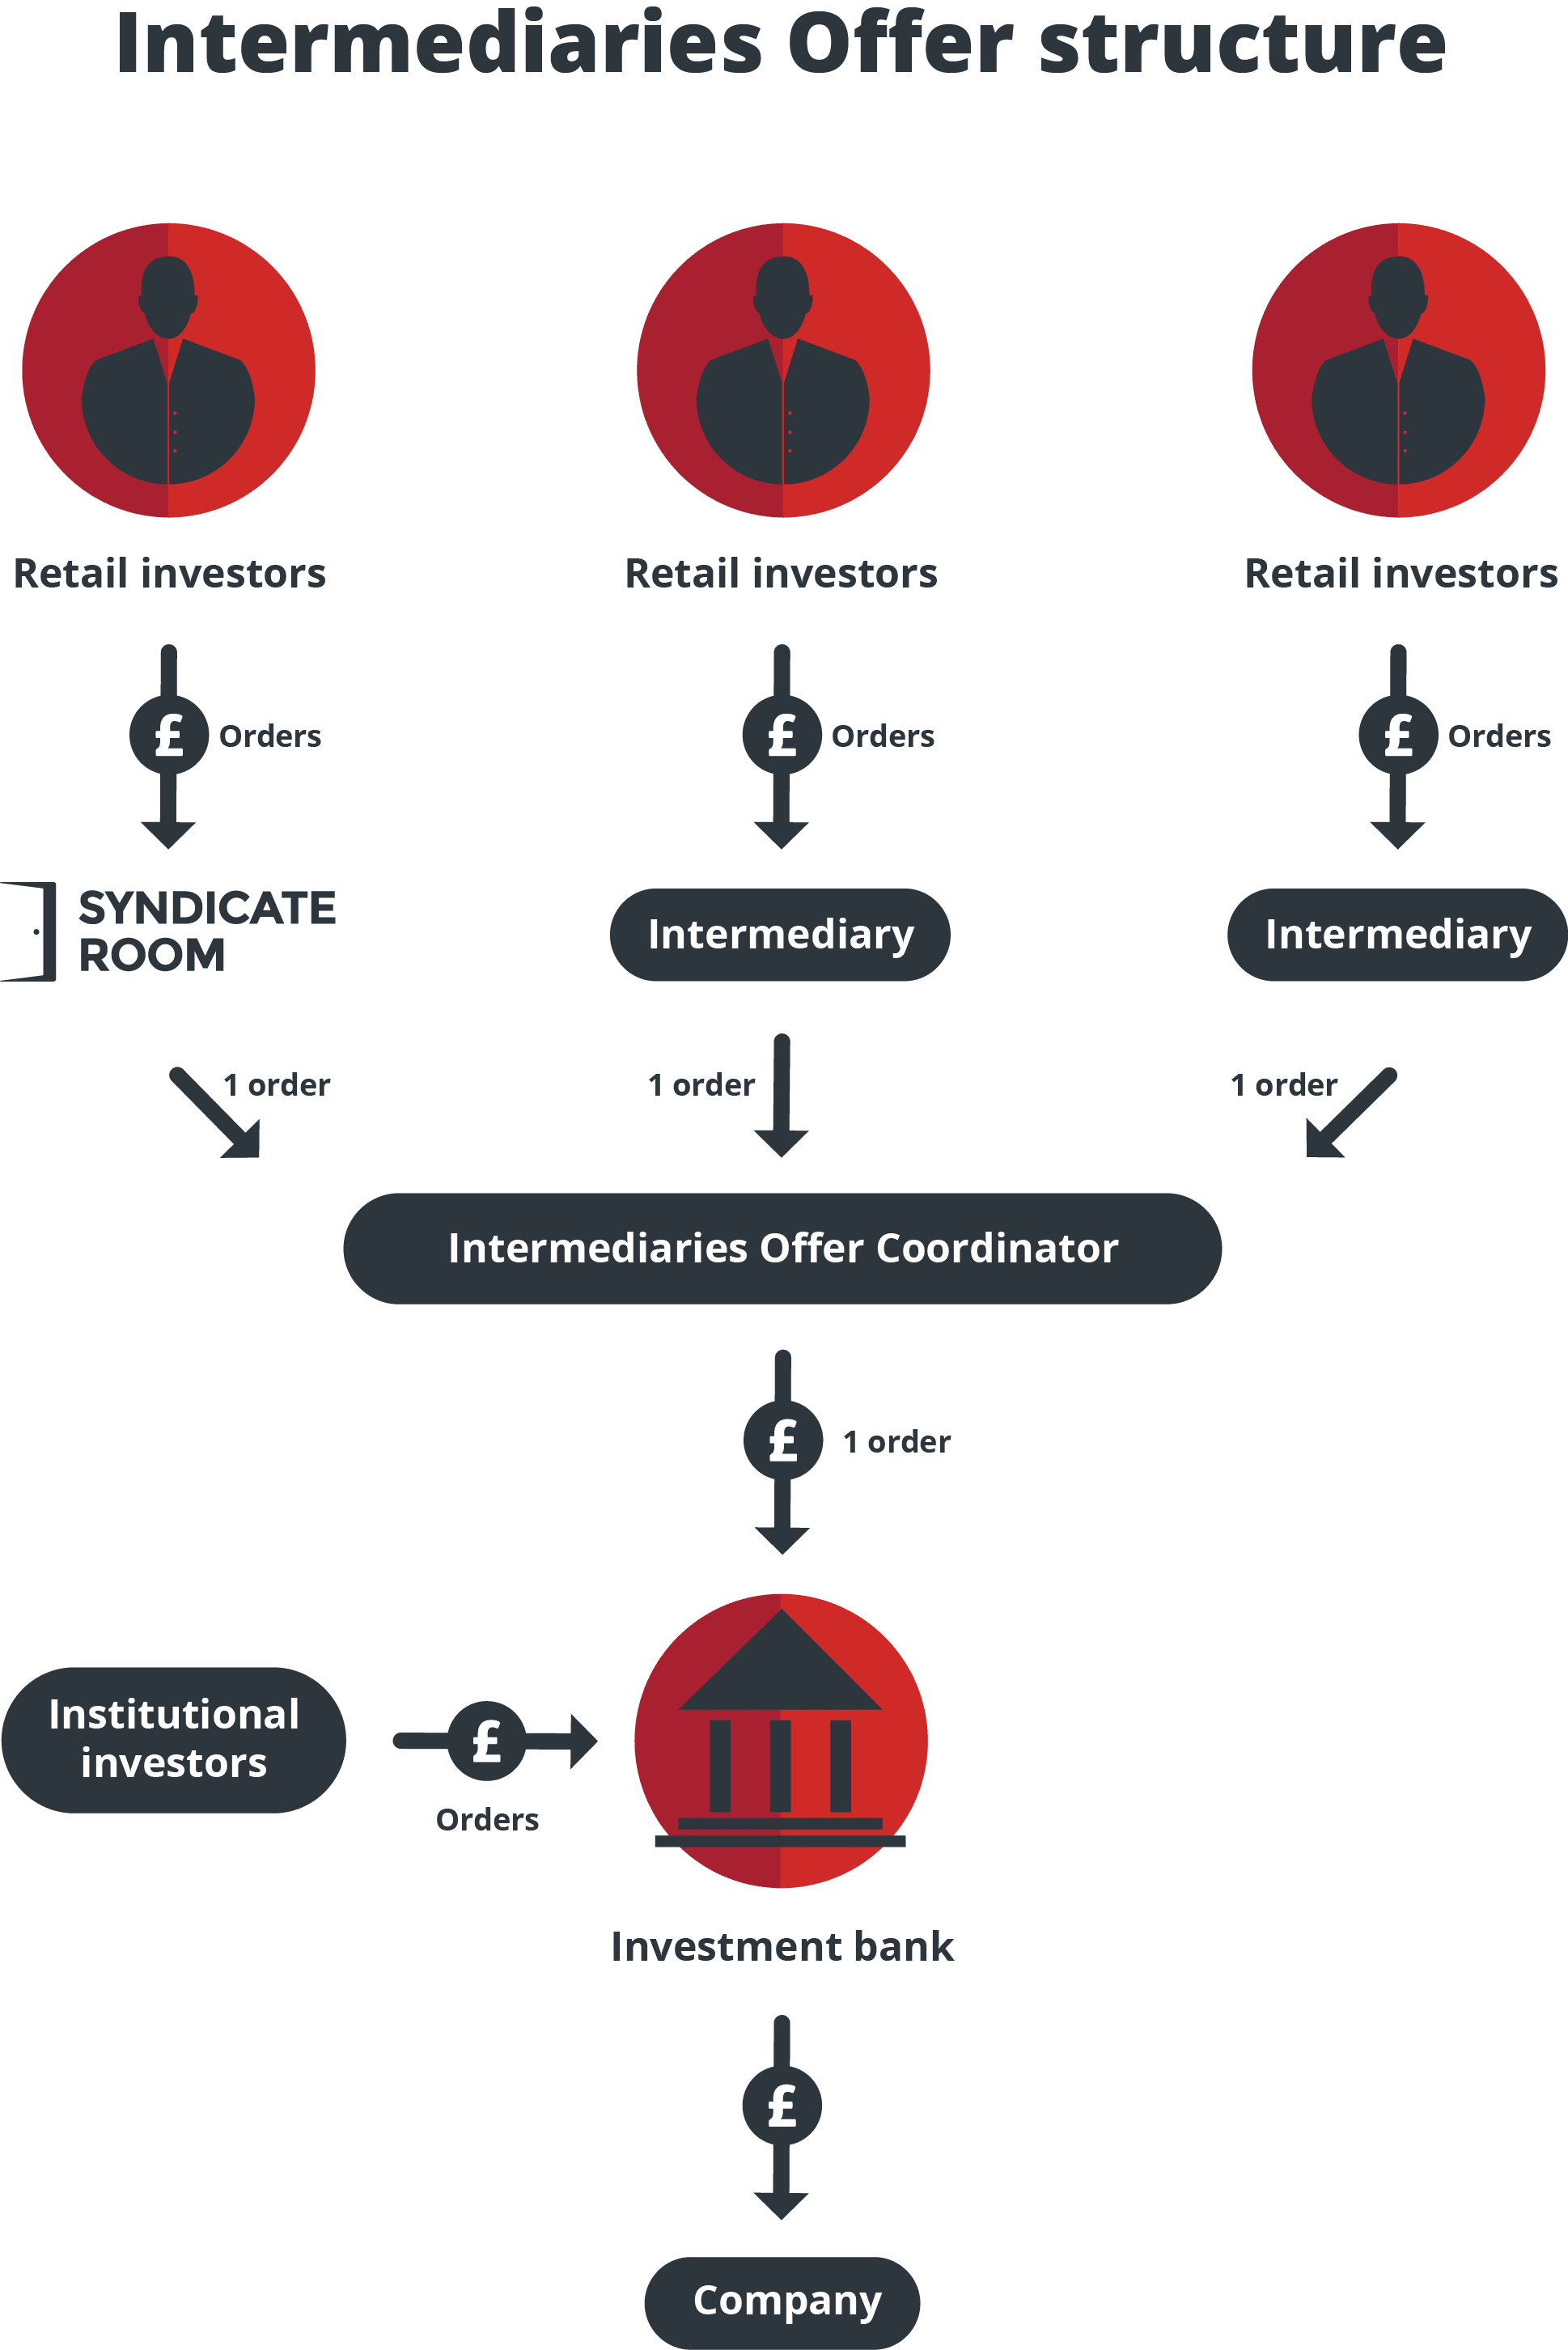 Intermediaries offer flow chart